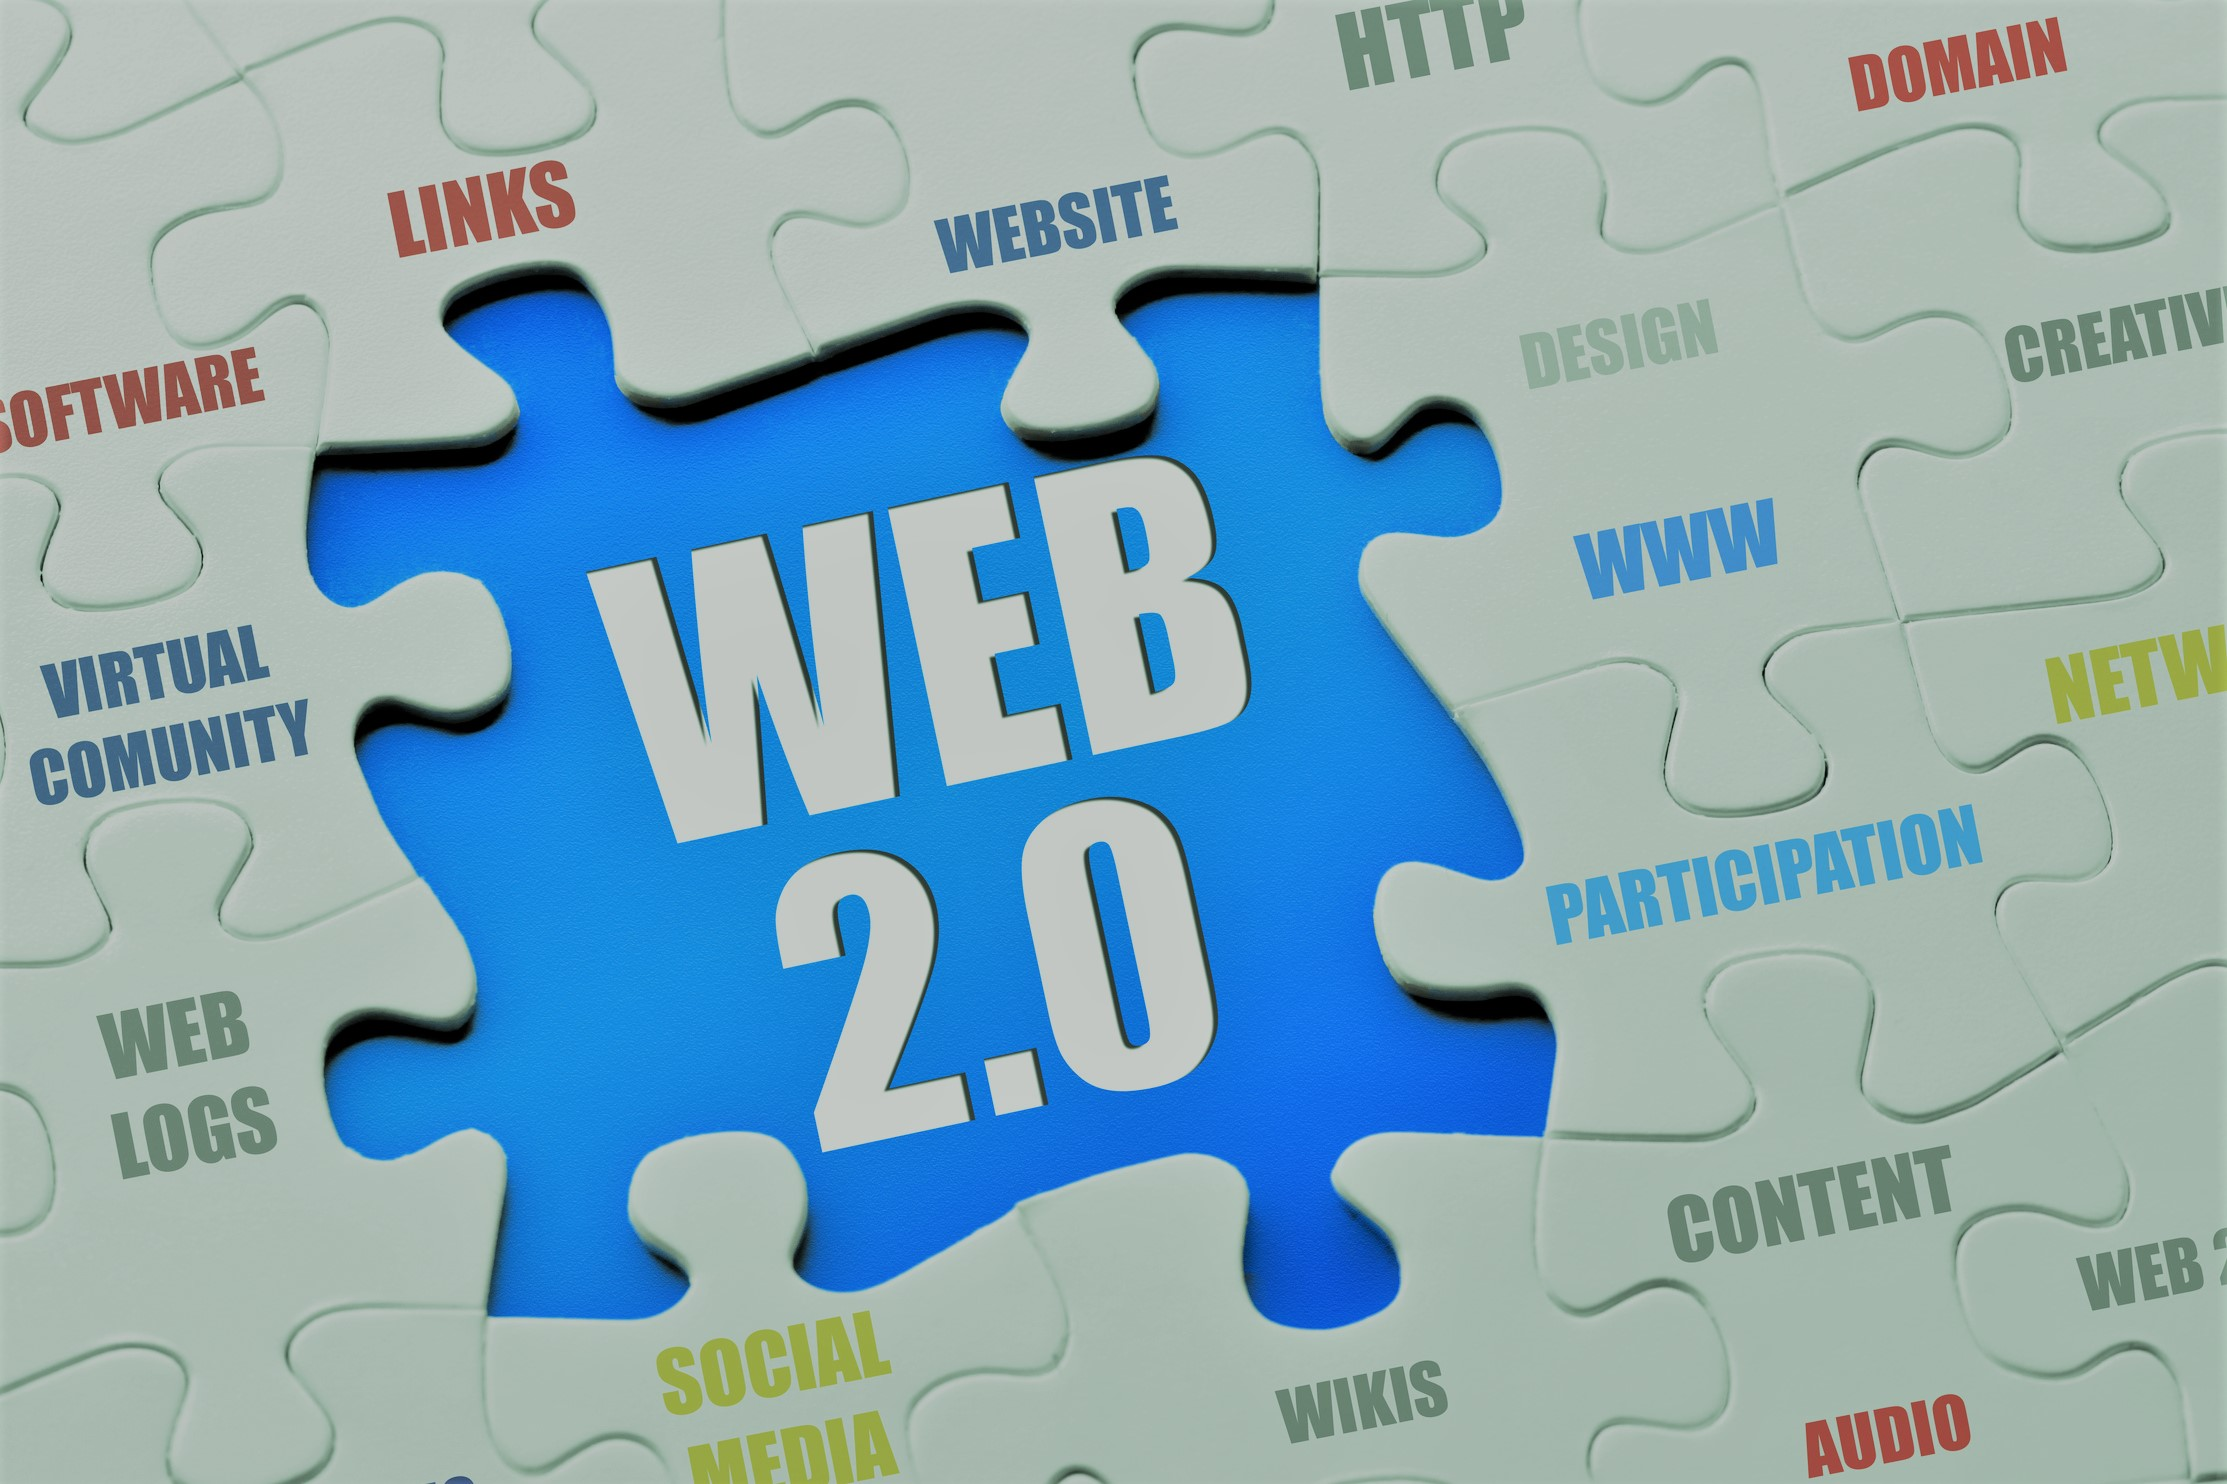 Boost Your website google Ranking With 40 High Quality Web 2.0 Backlinks